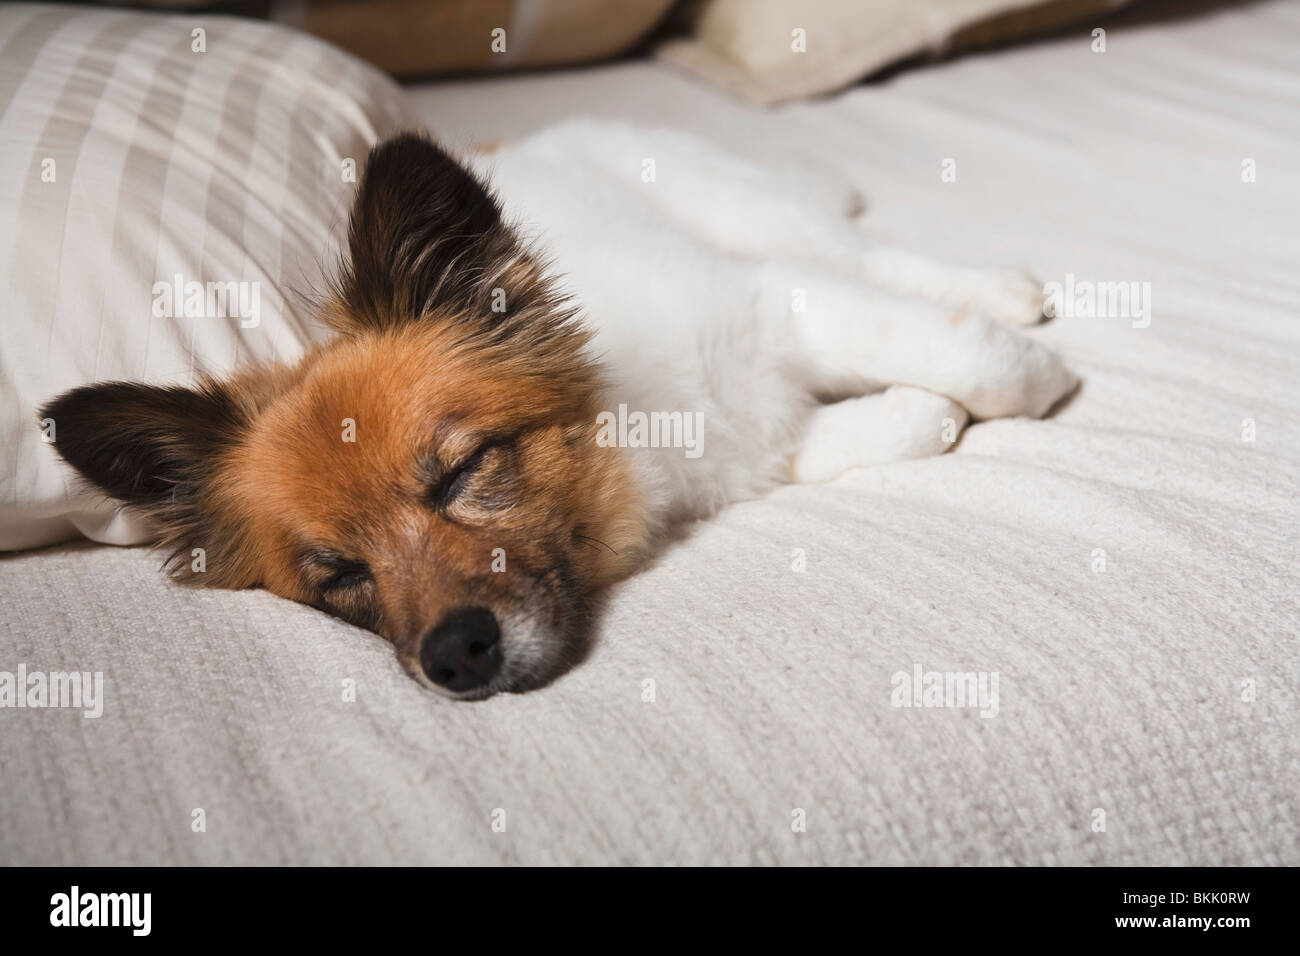 Nashville, Tennessee, United States Of America; A Dog Sleeping On A Bed - Stock Image